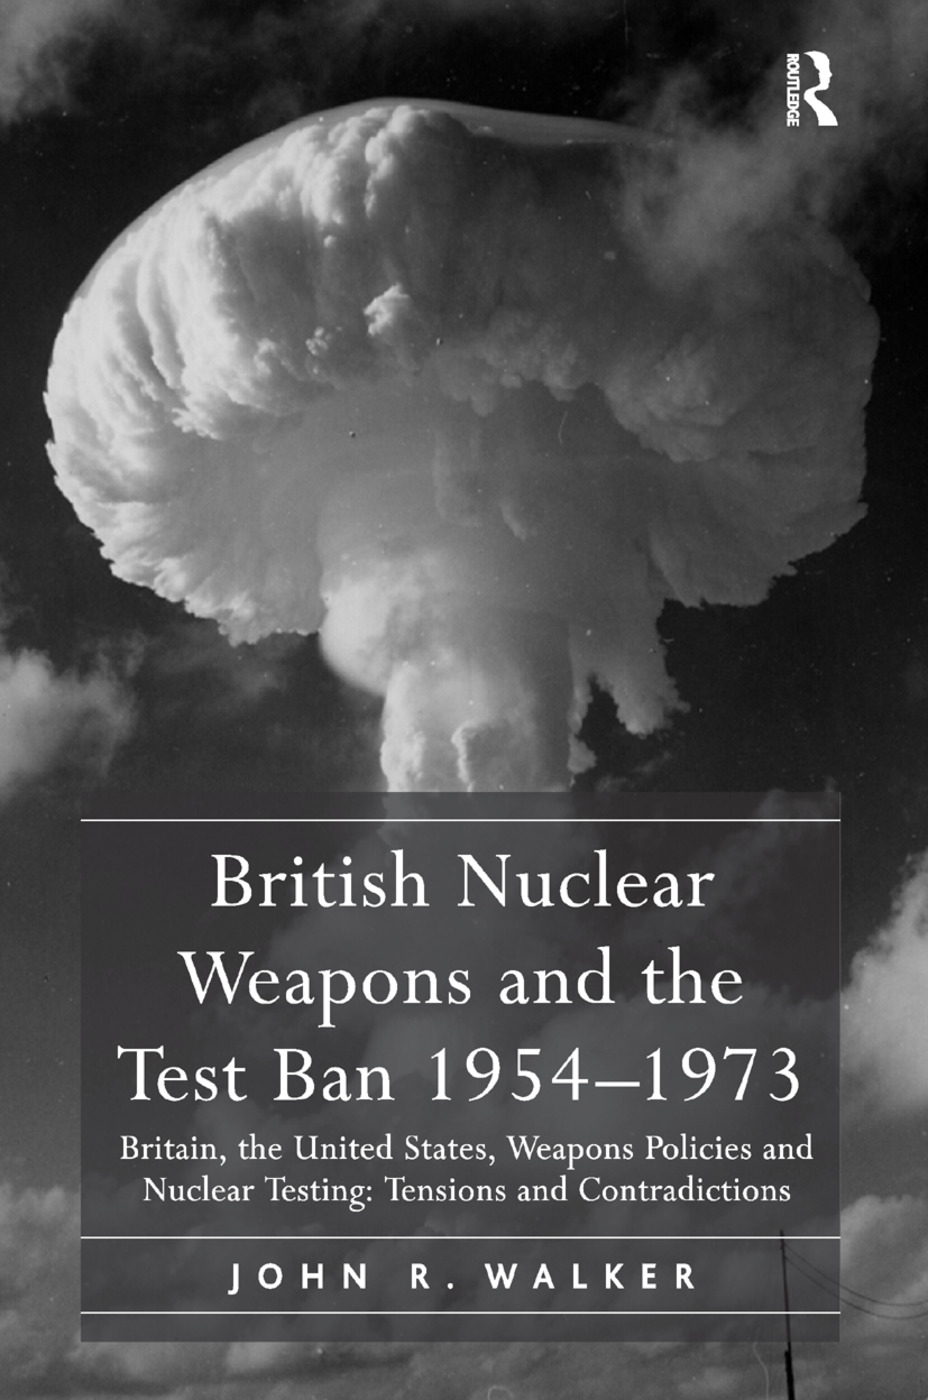 British Nuclear Weapons and the Test Ban 1954-1973